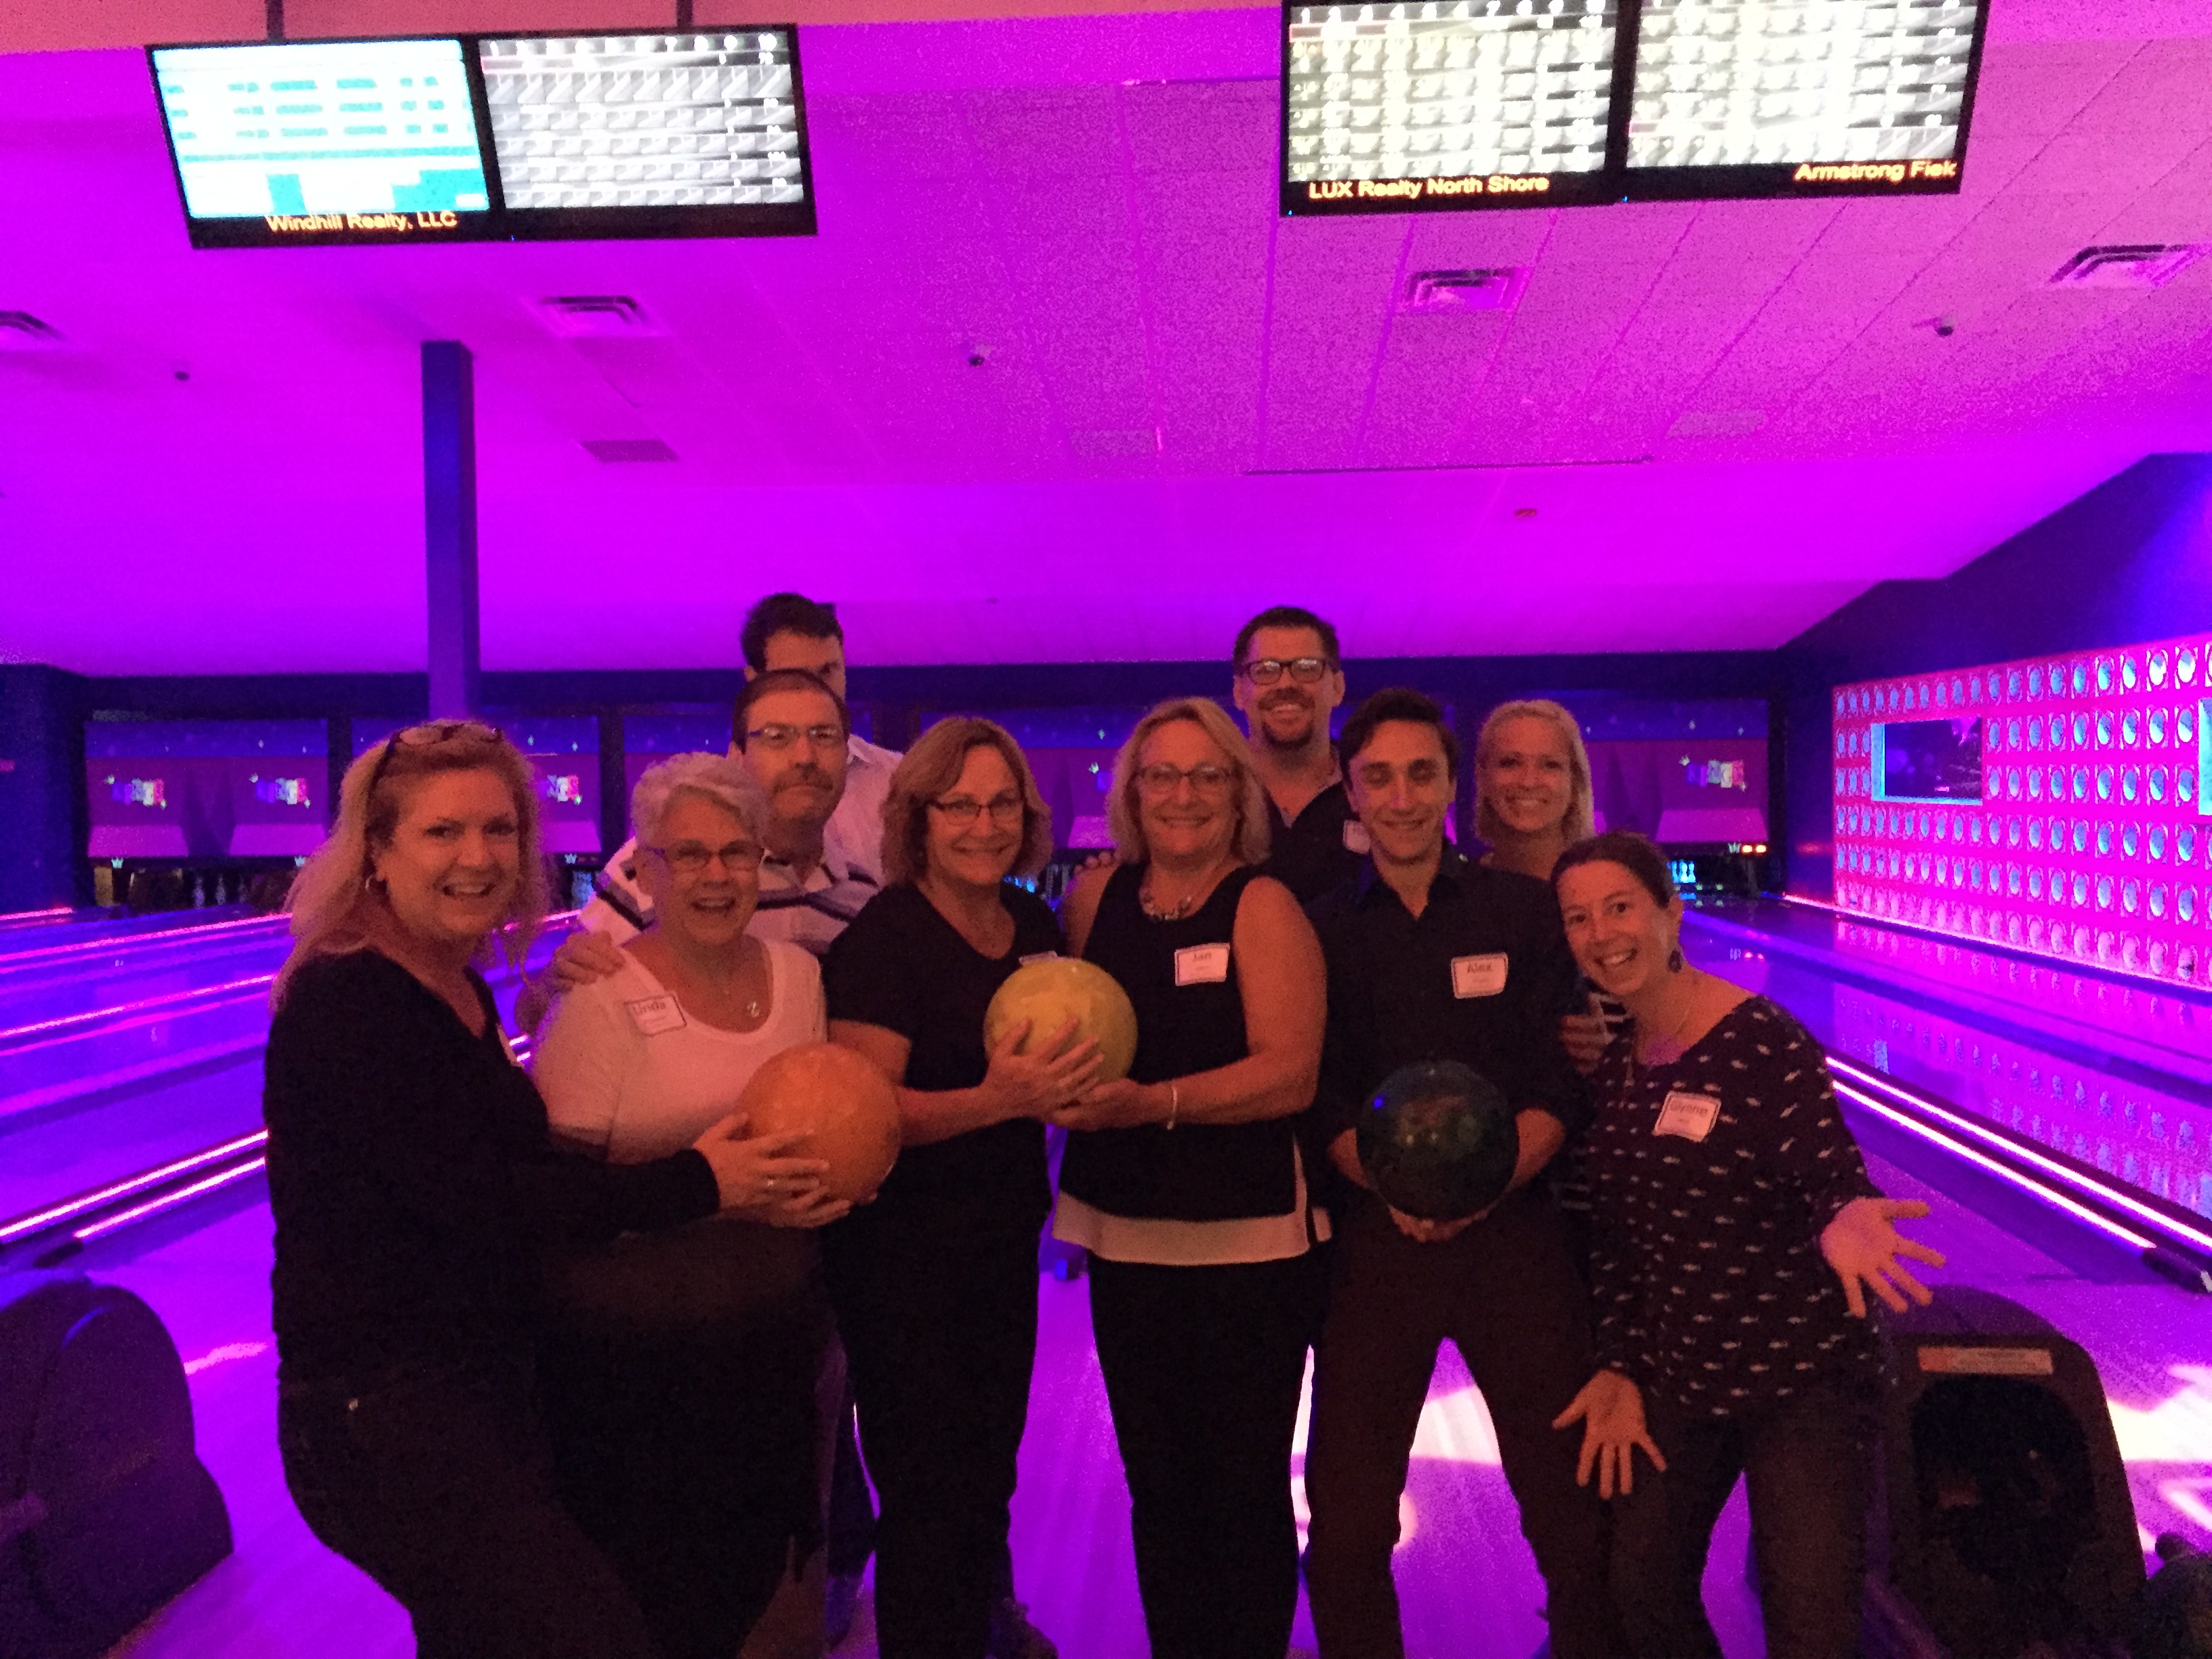 LUX Realty Bowling at Kings in Lynnfield